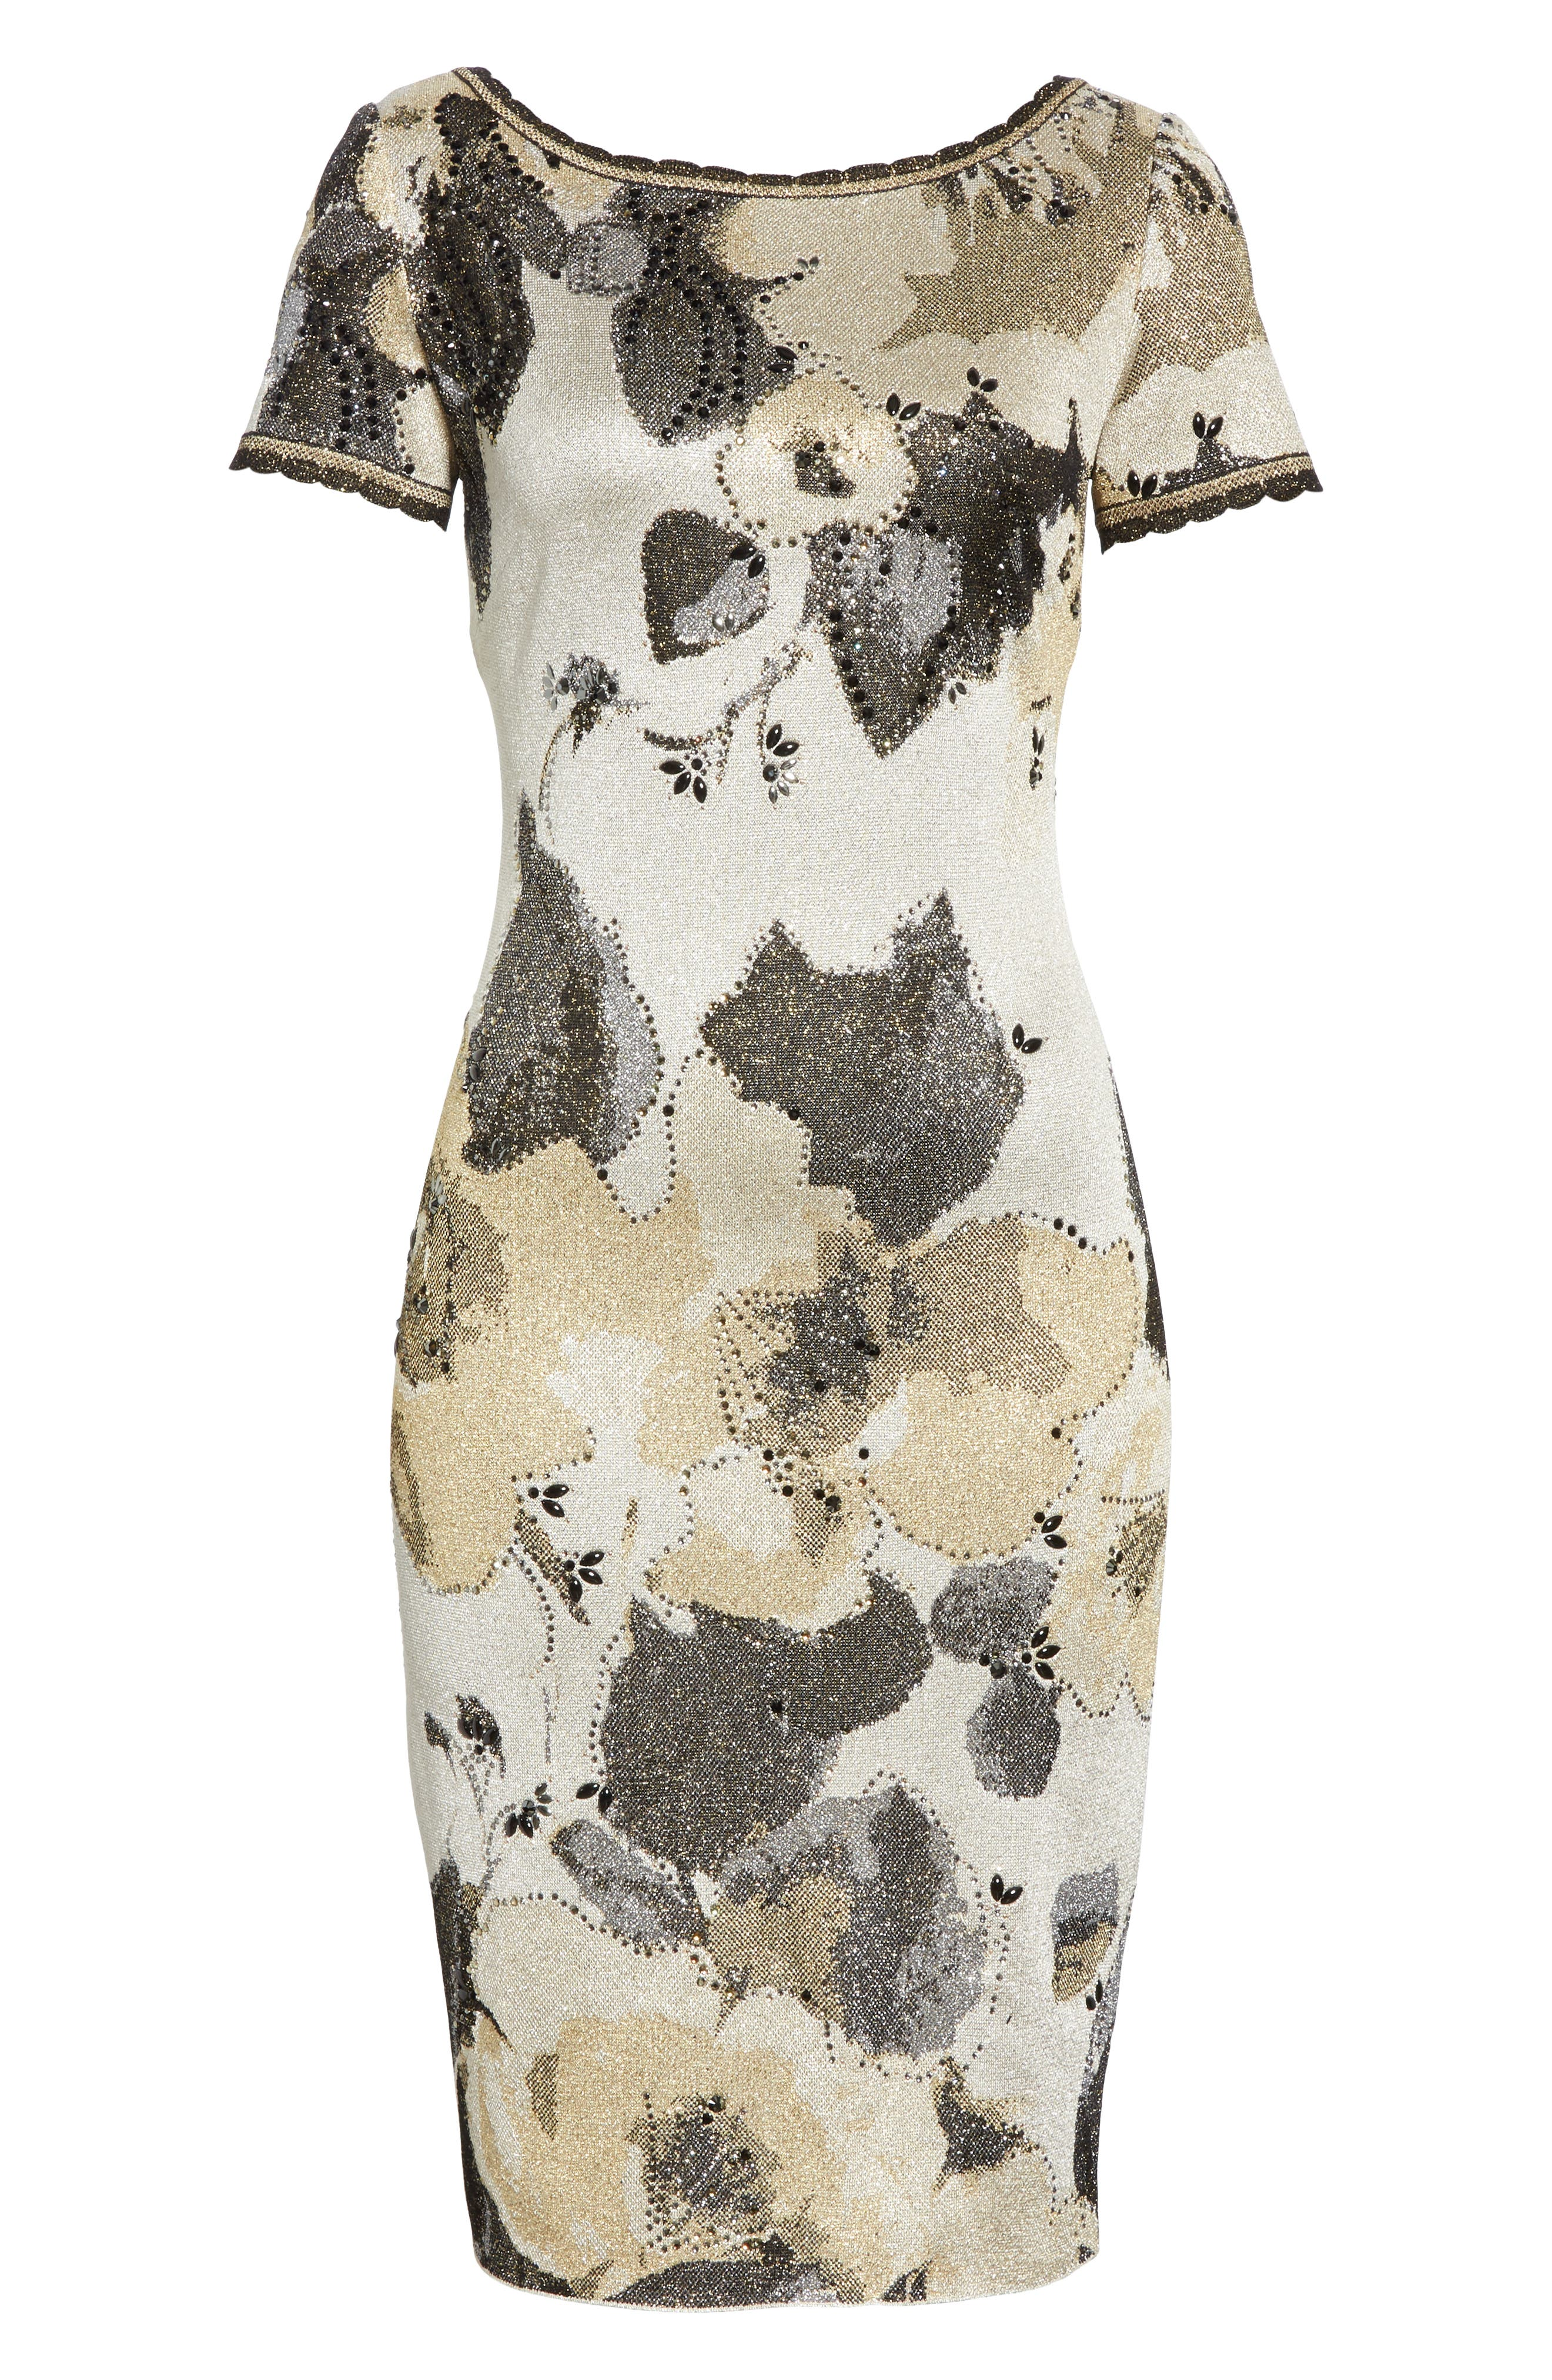 ST. JOHN COLLECTION,                             Gold Leaf Jacquard Knit Dress,                             Alternate thumbnail 6, color,                             METALLIC MULTI